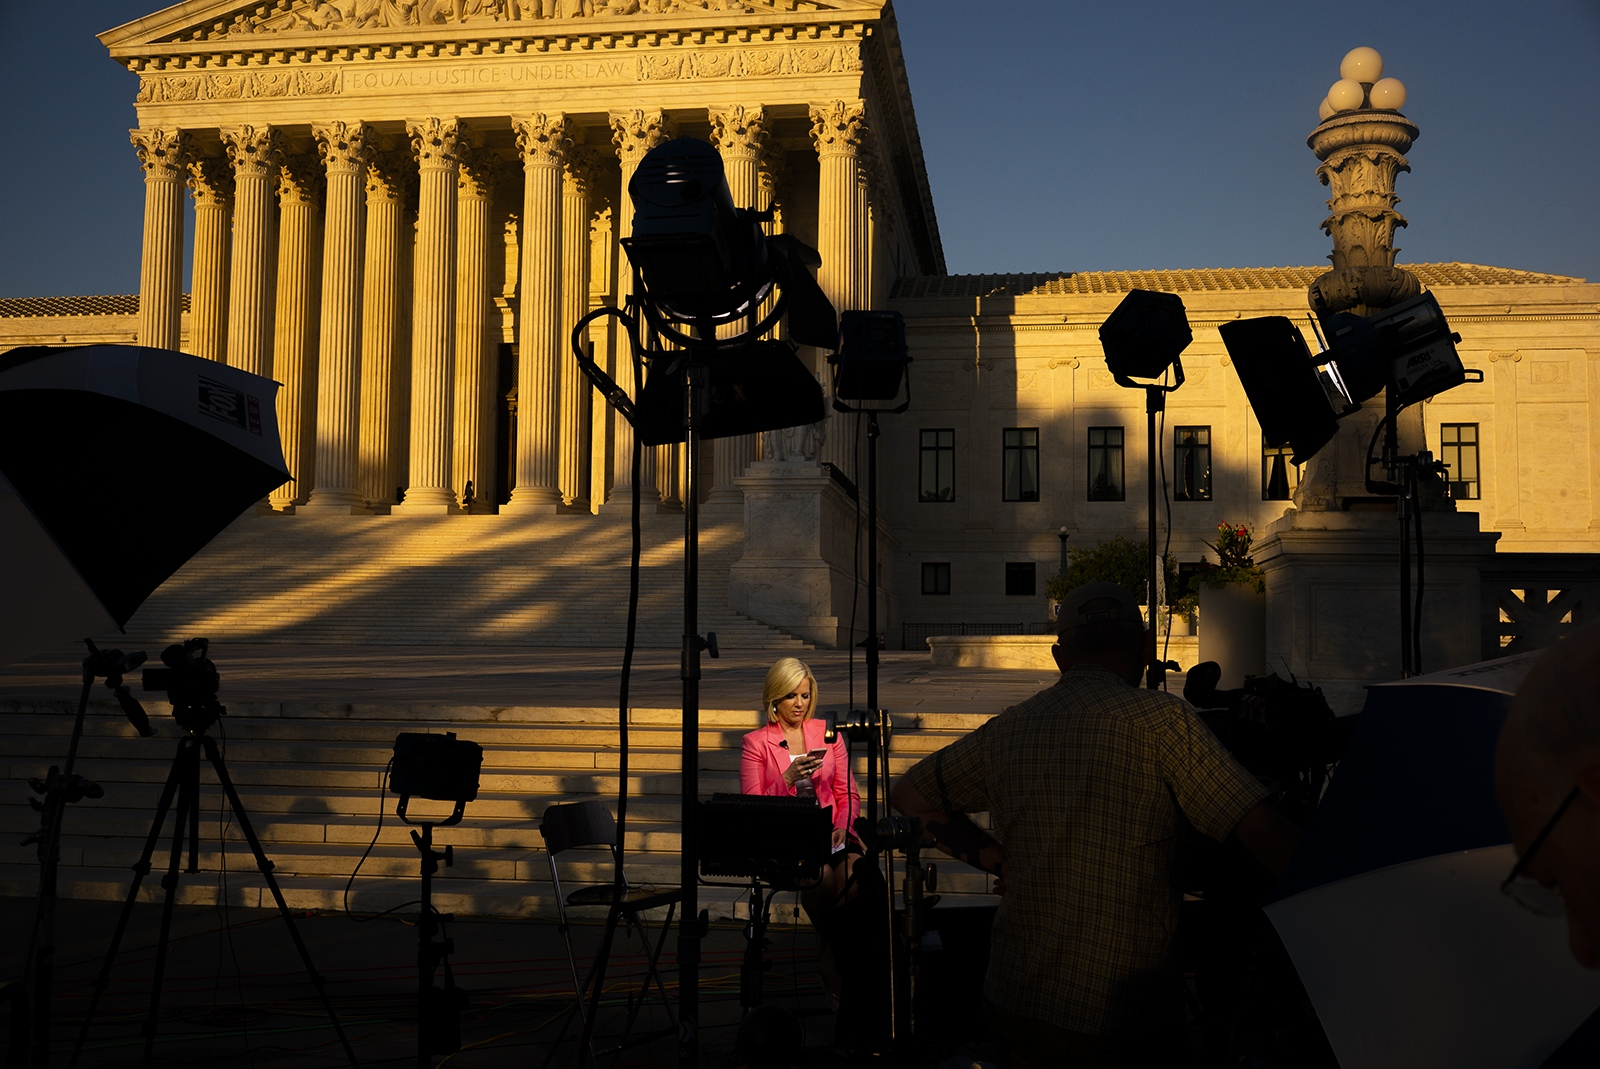 "Fox News host Shannon Bream waits for the SCOTUS nomination announcement. Bream's live show was canceled because as she stated in a tweet, ""The mood here tonight is very volatile.""  The scene became loud and a few people were in each other's faces but the mood was on par with every anti-abortion / pro-choice rally I've scene on the Supreme steps."